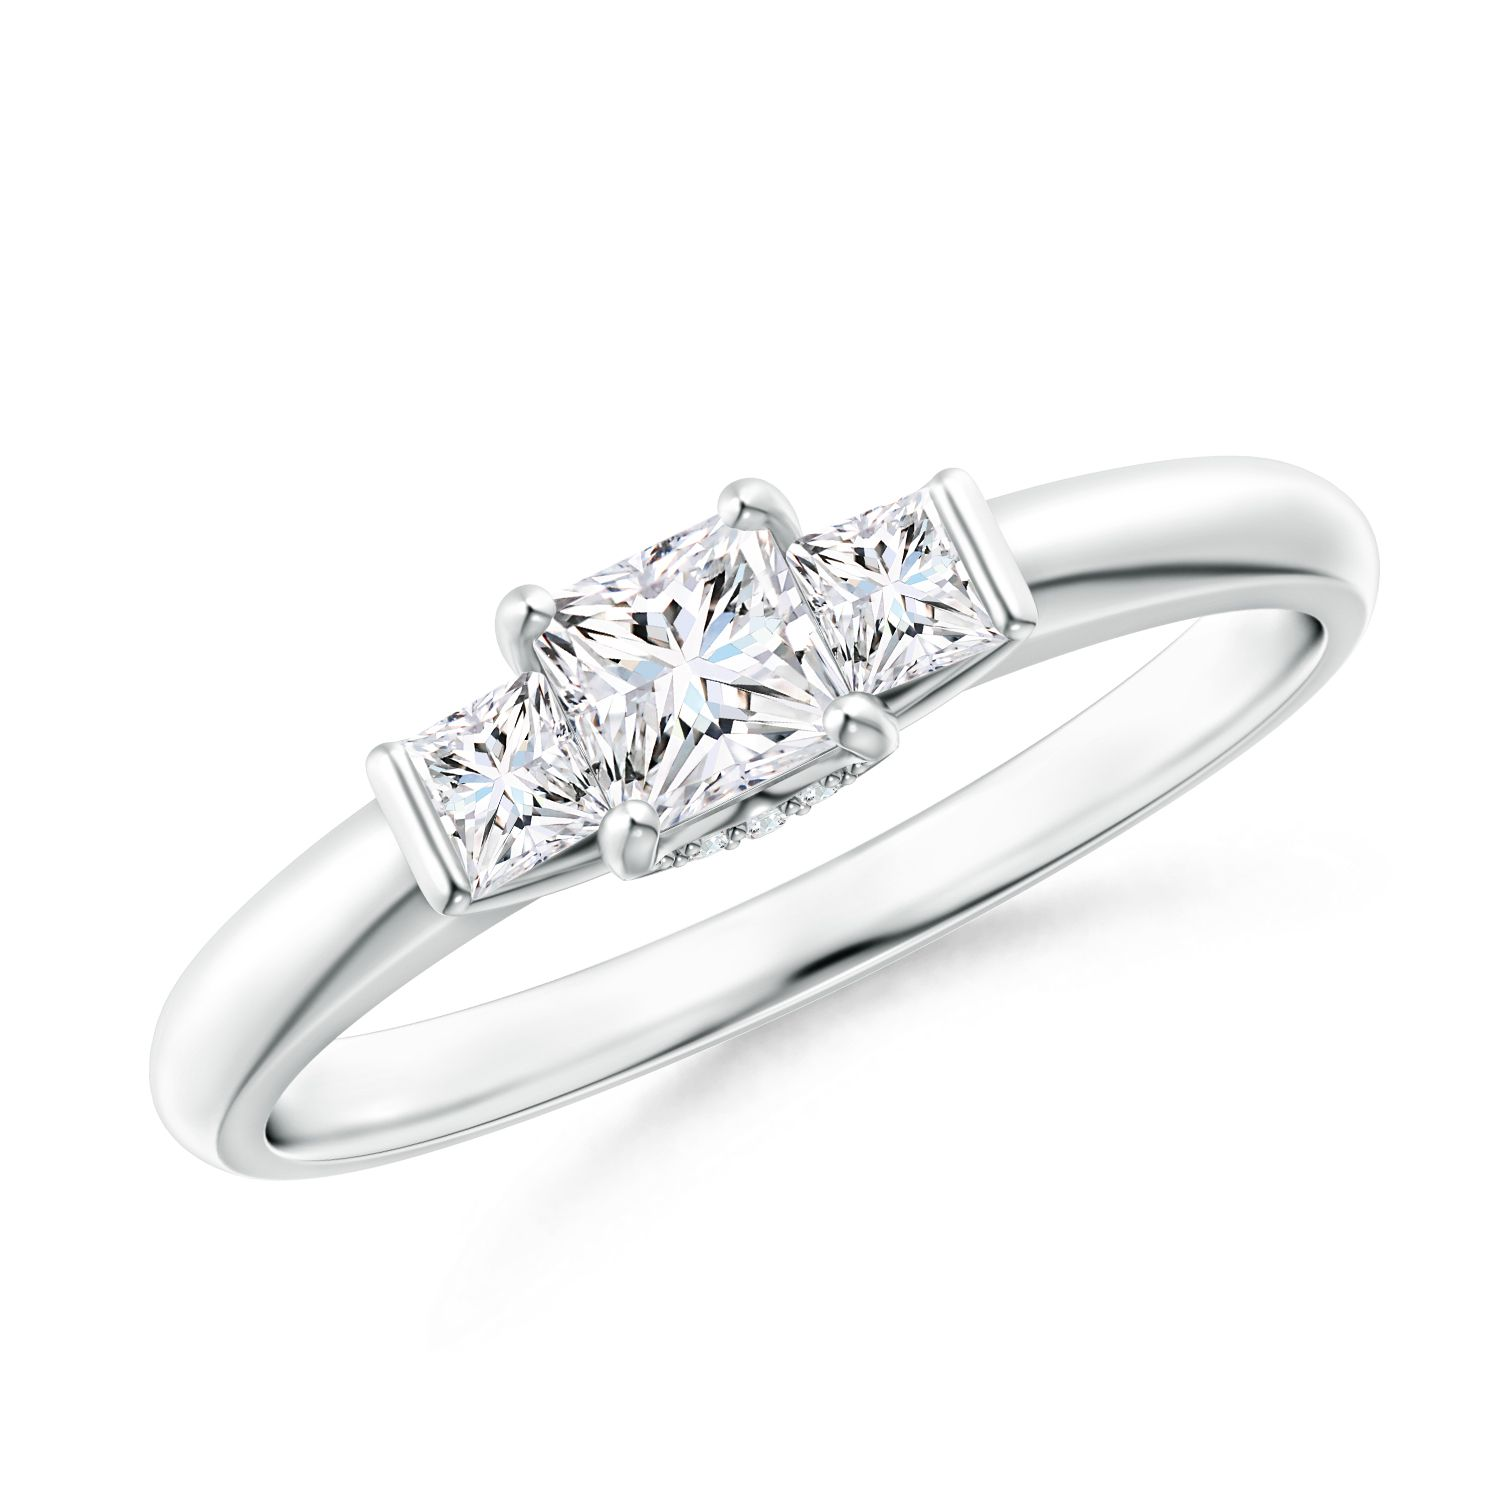 Angara Classic Princess-Cut Diamond Halo Engagement Ring WOXK3GdRJ